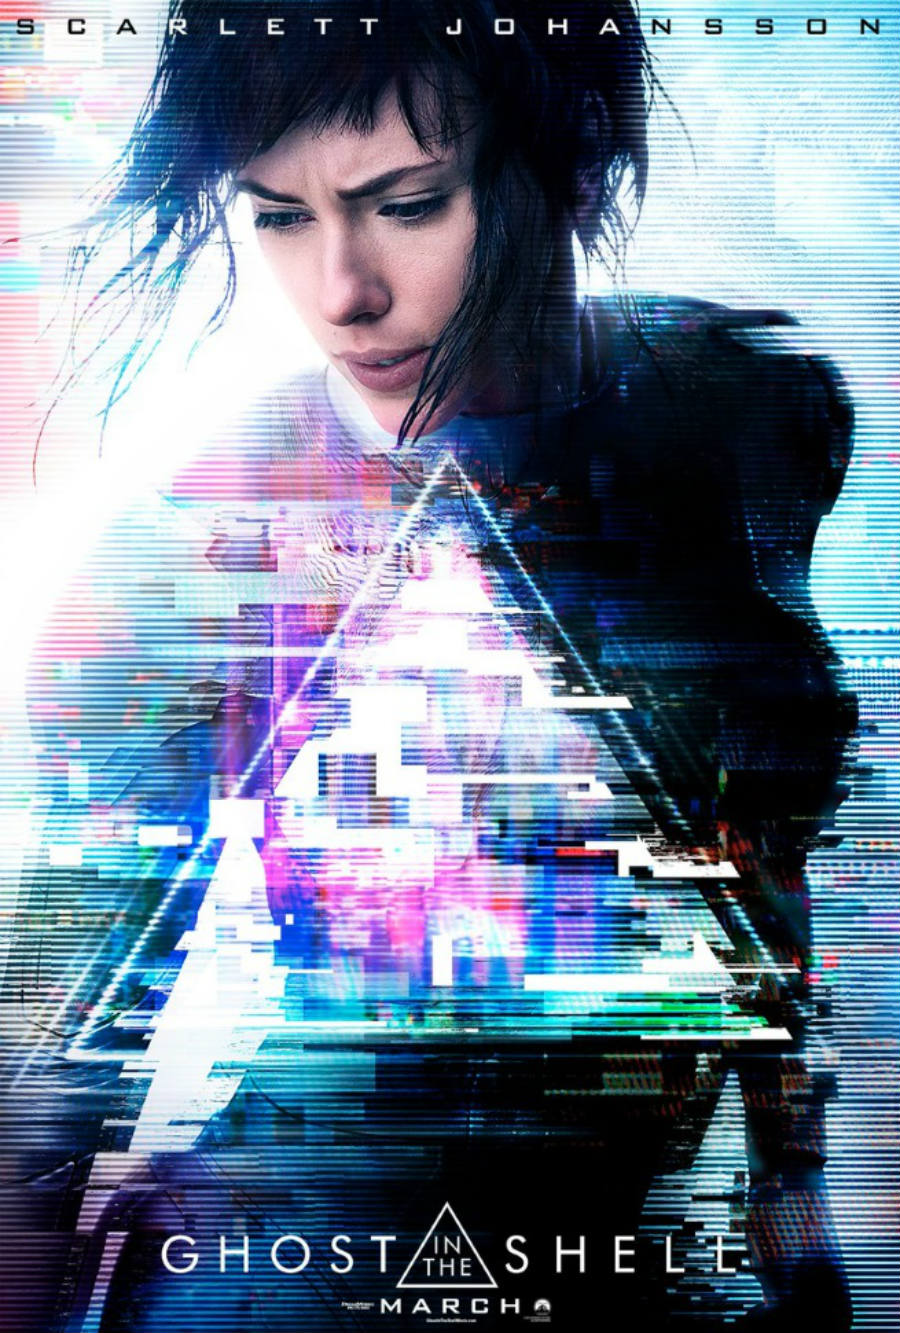 Ghost in the Shell poster. Image: Bleeding Cool News.